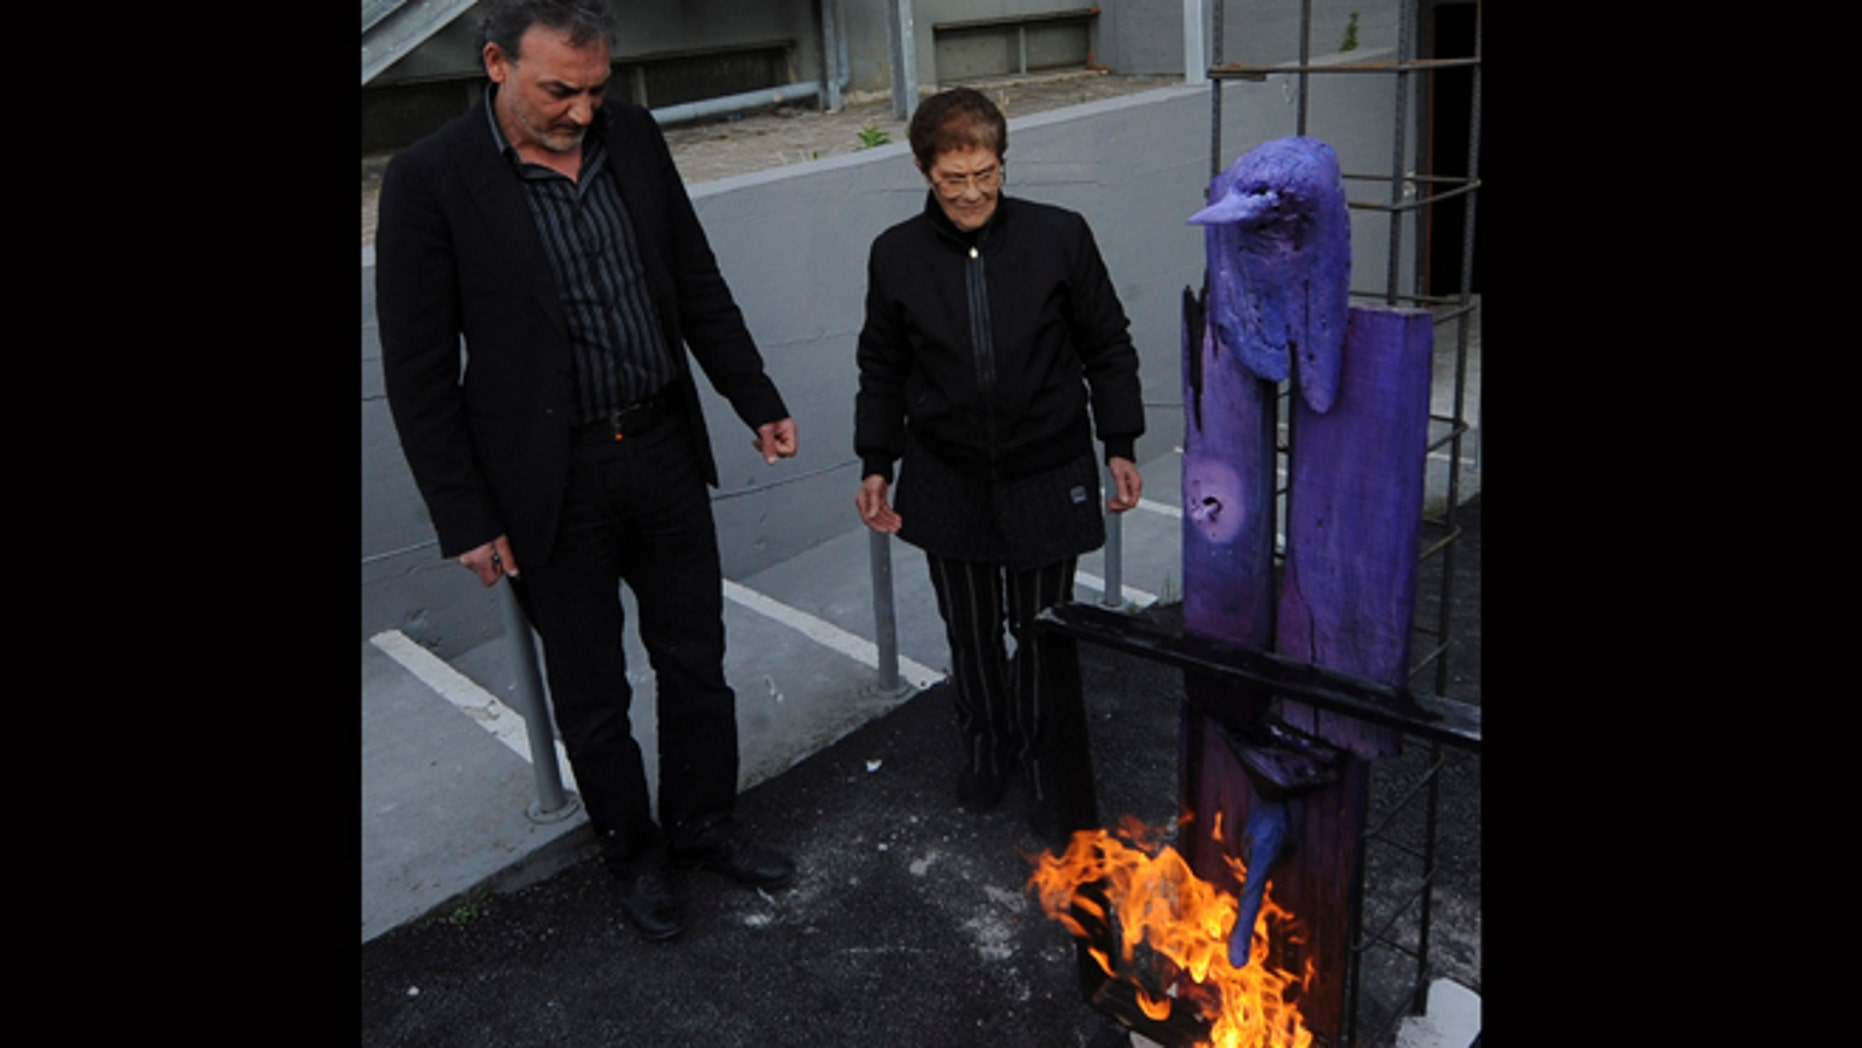 April 18, 2012: Antonio Manfredi, left, director of the Casoria Contemporary Art Museum, and Italian artist Rosaria Matarese burn one of Matarese's creations in front of the museum, near Naples.